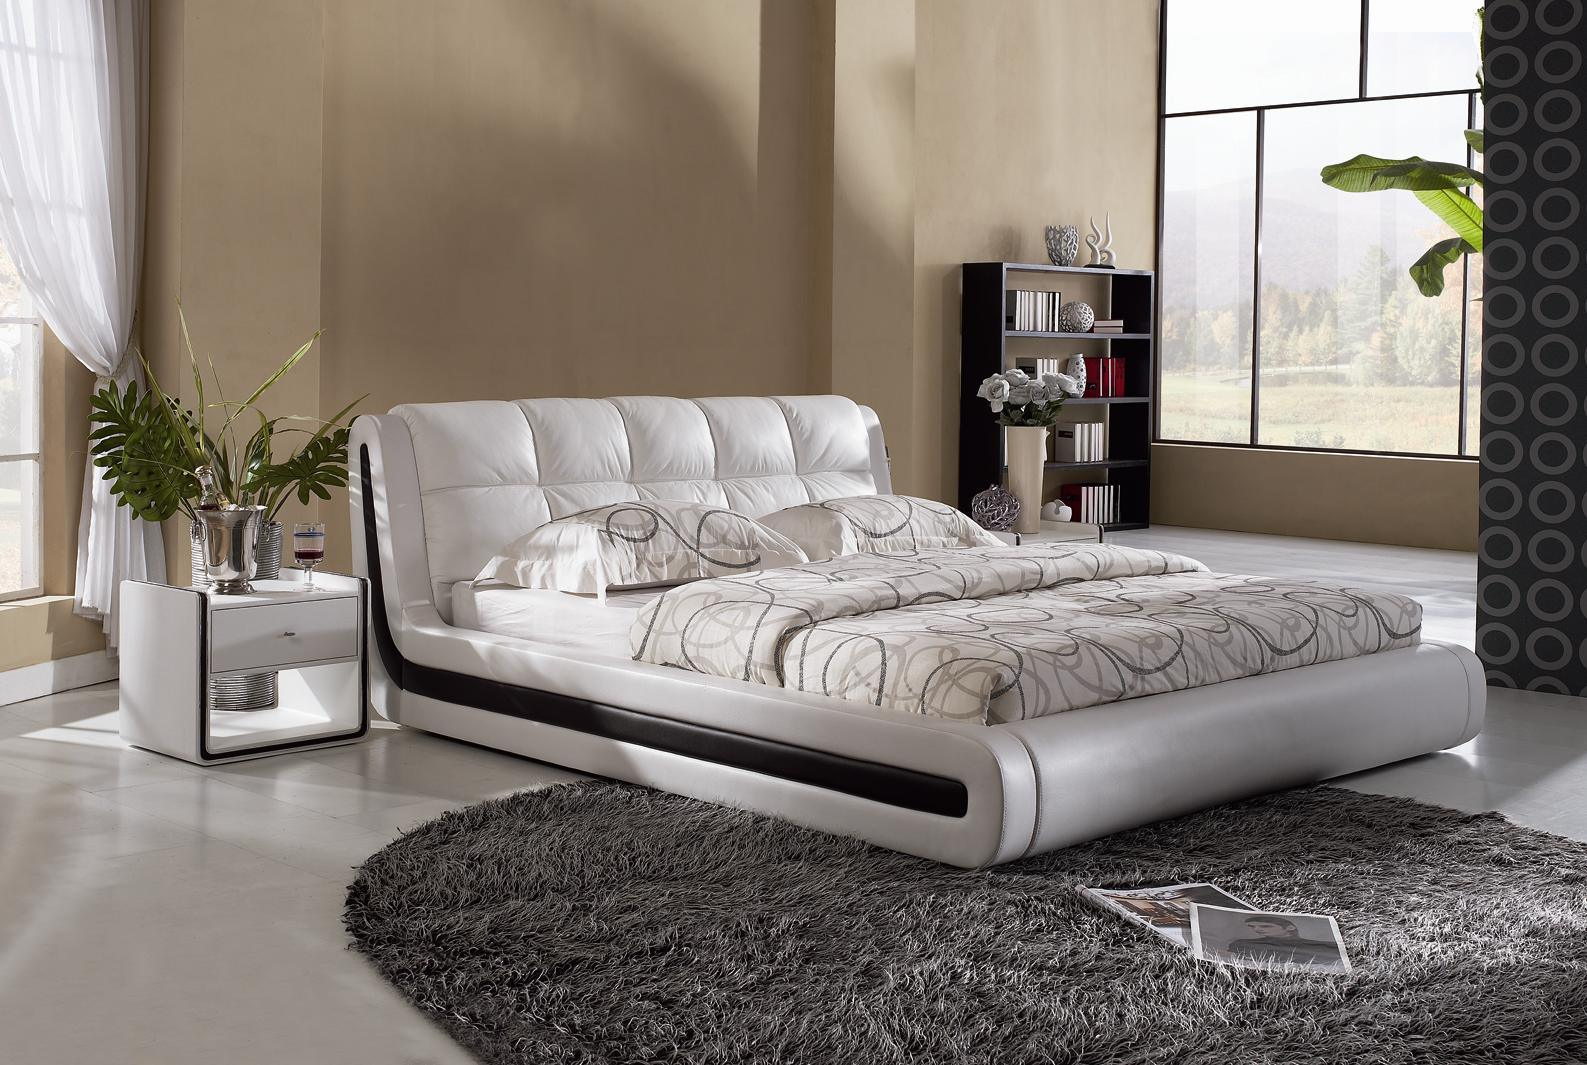 Modern beds design pictures simple home decoration - Designs of bed ...